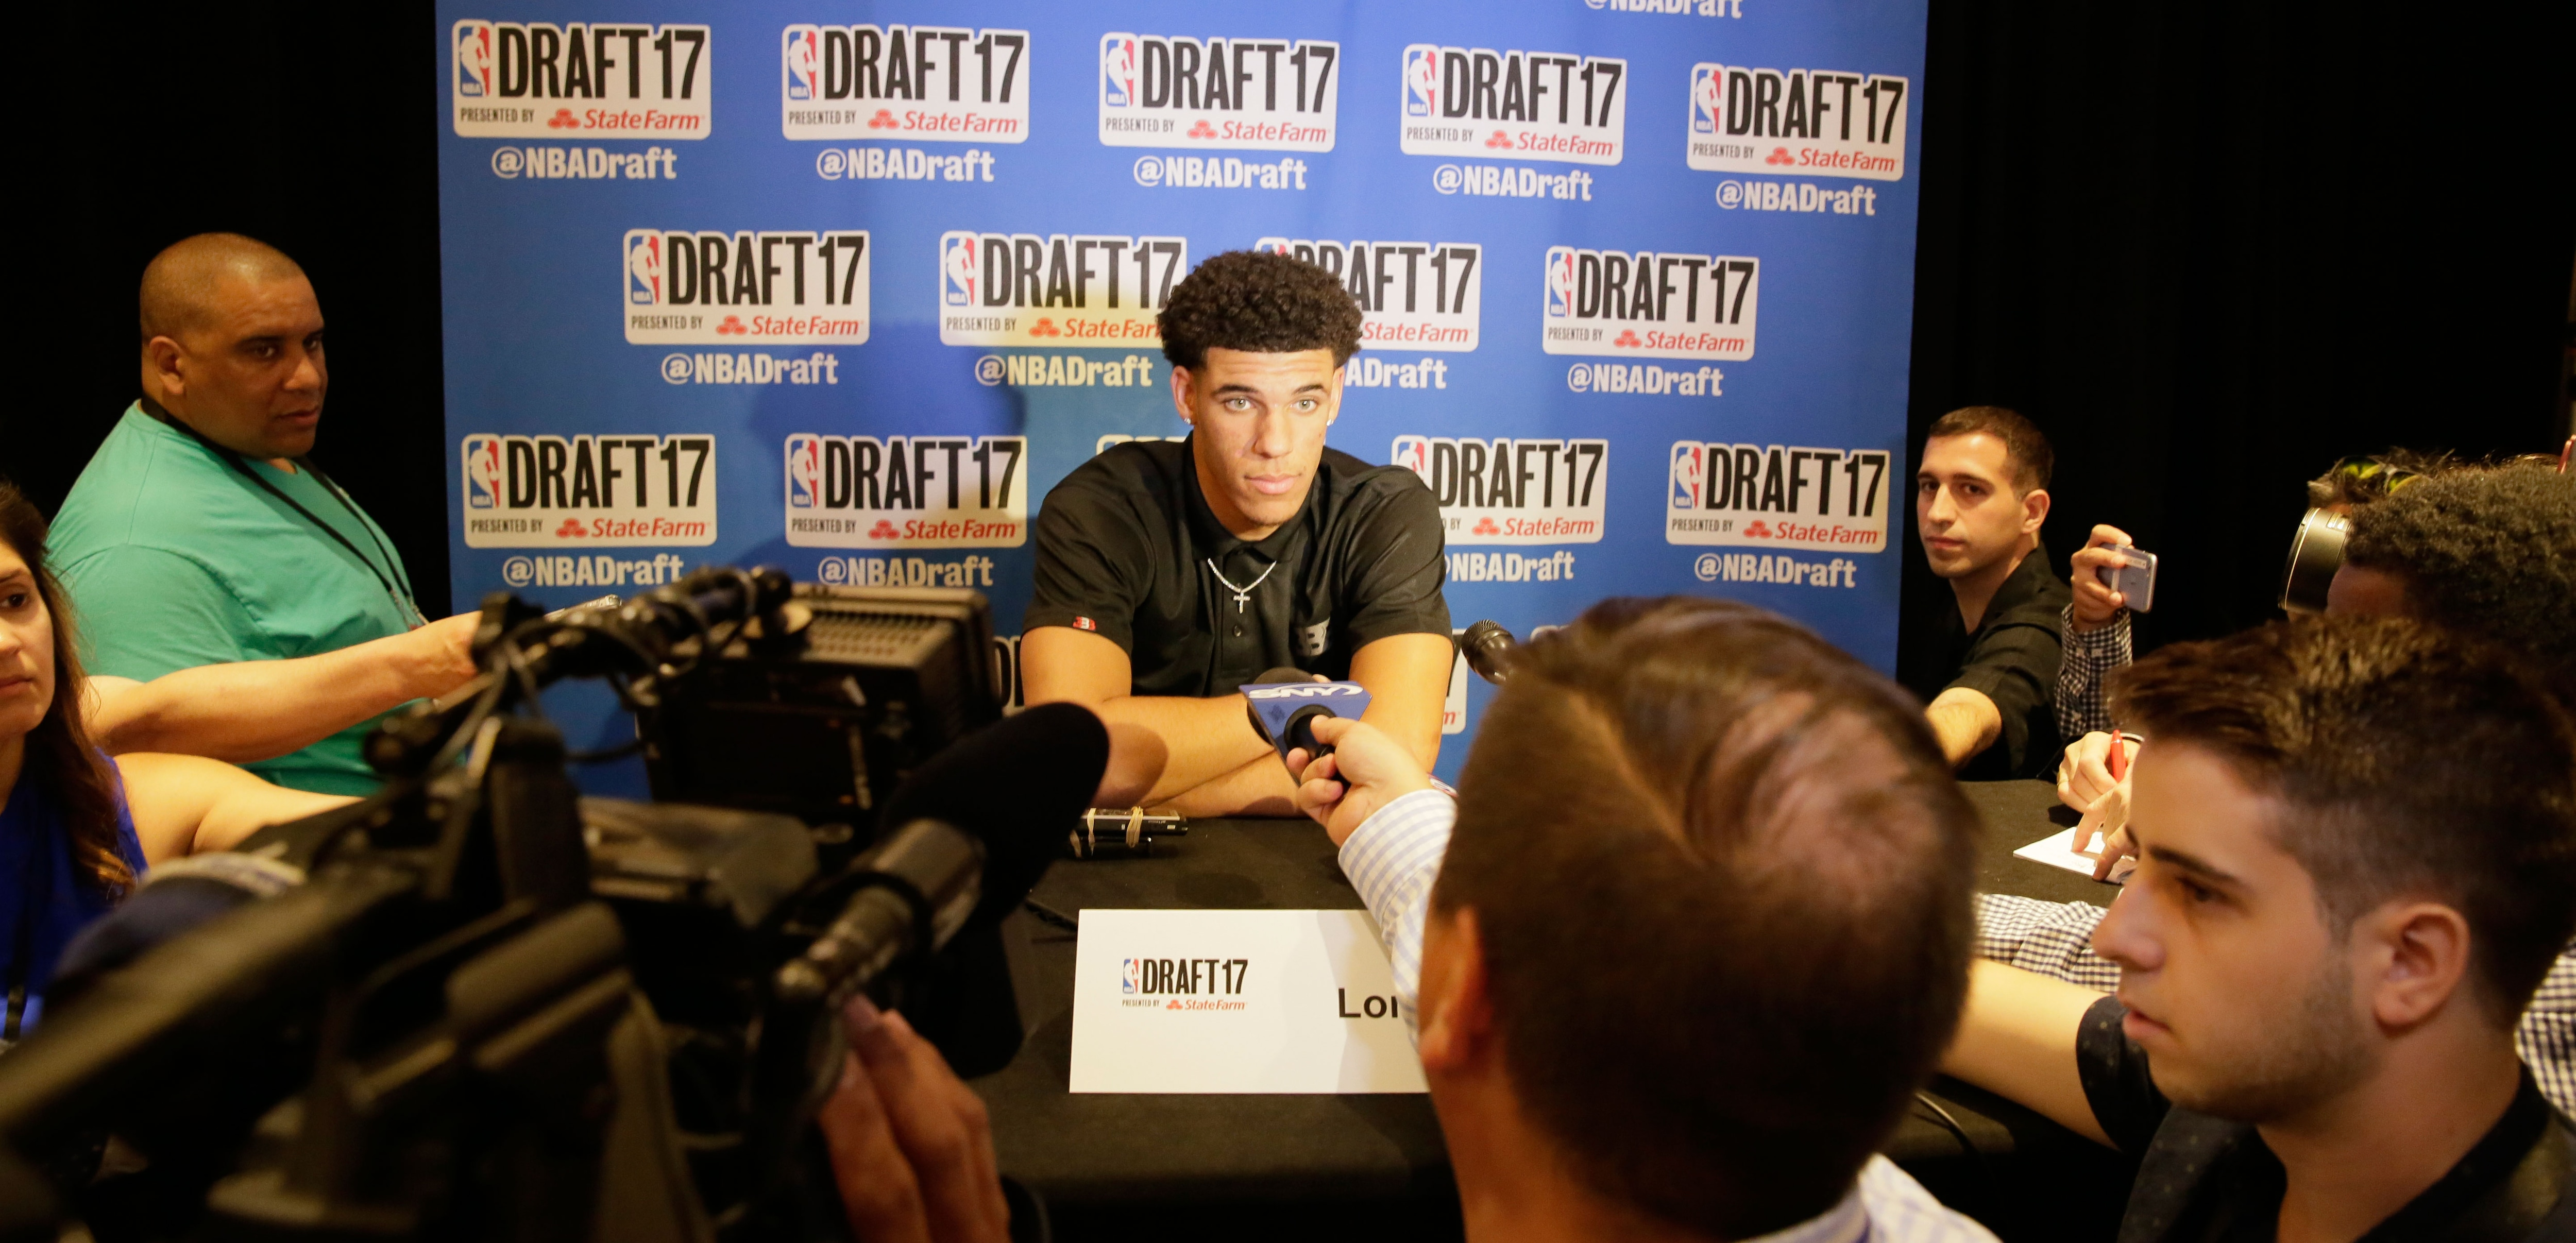 NBA draft expected to provide another talent influx to already-deep PG position